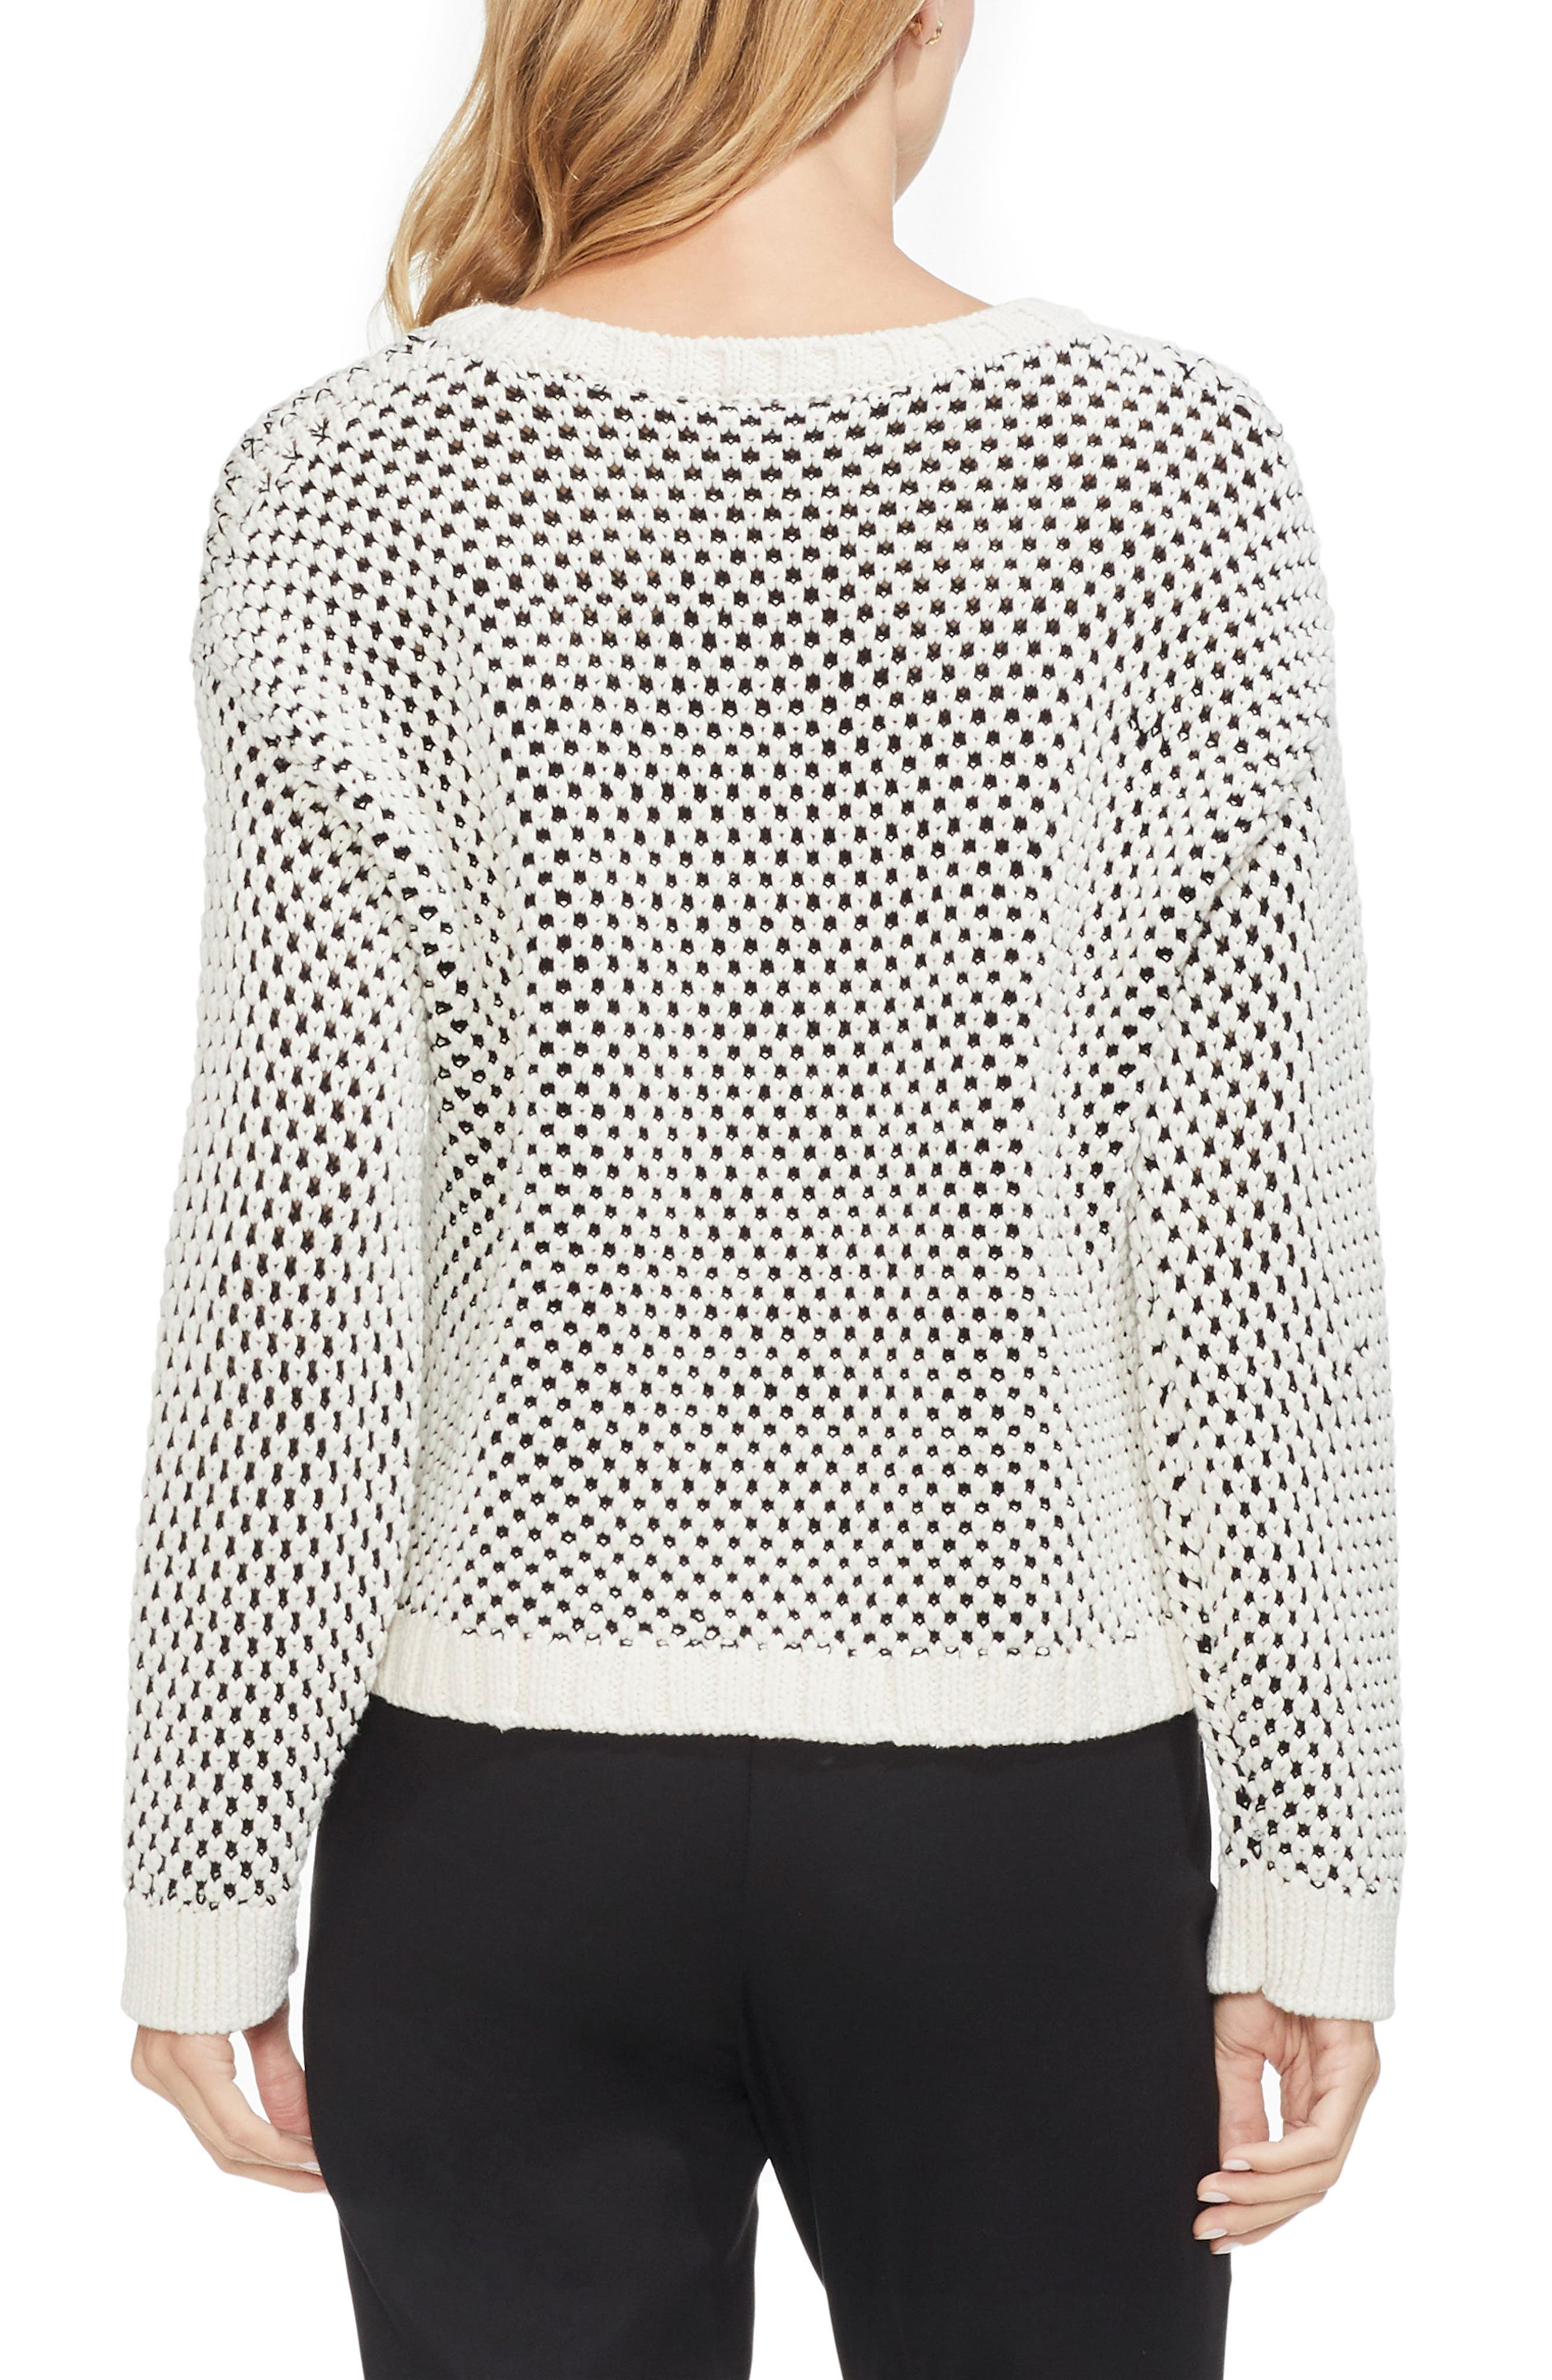 VINCE CAMUTO,                             Textured Stitch Sweater,                             Alternate thumbnail 2, color,                             ANTIQUE WHITE